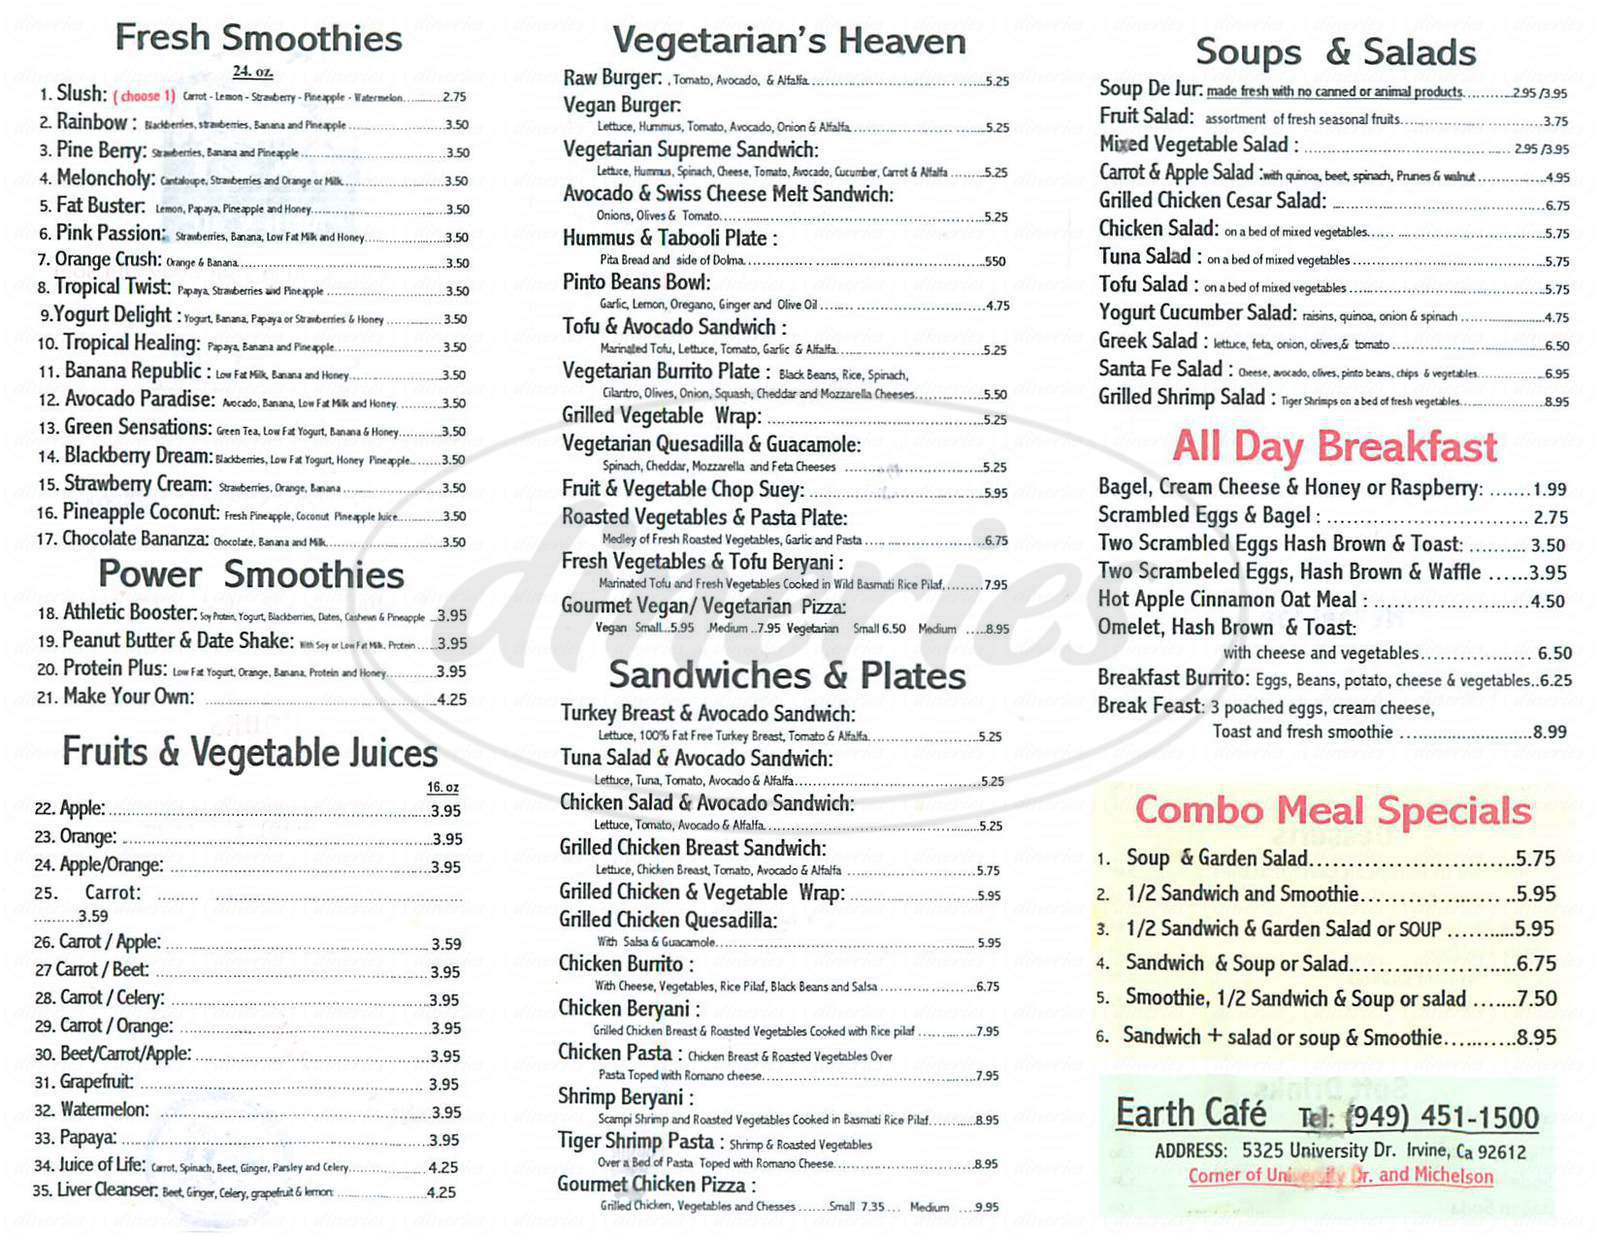 menu for Earth Café